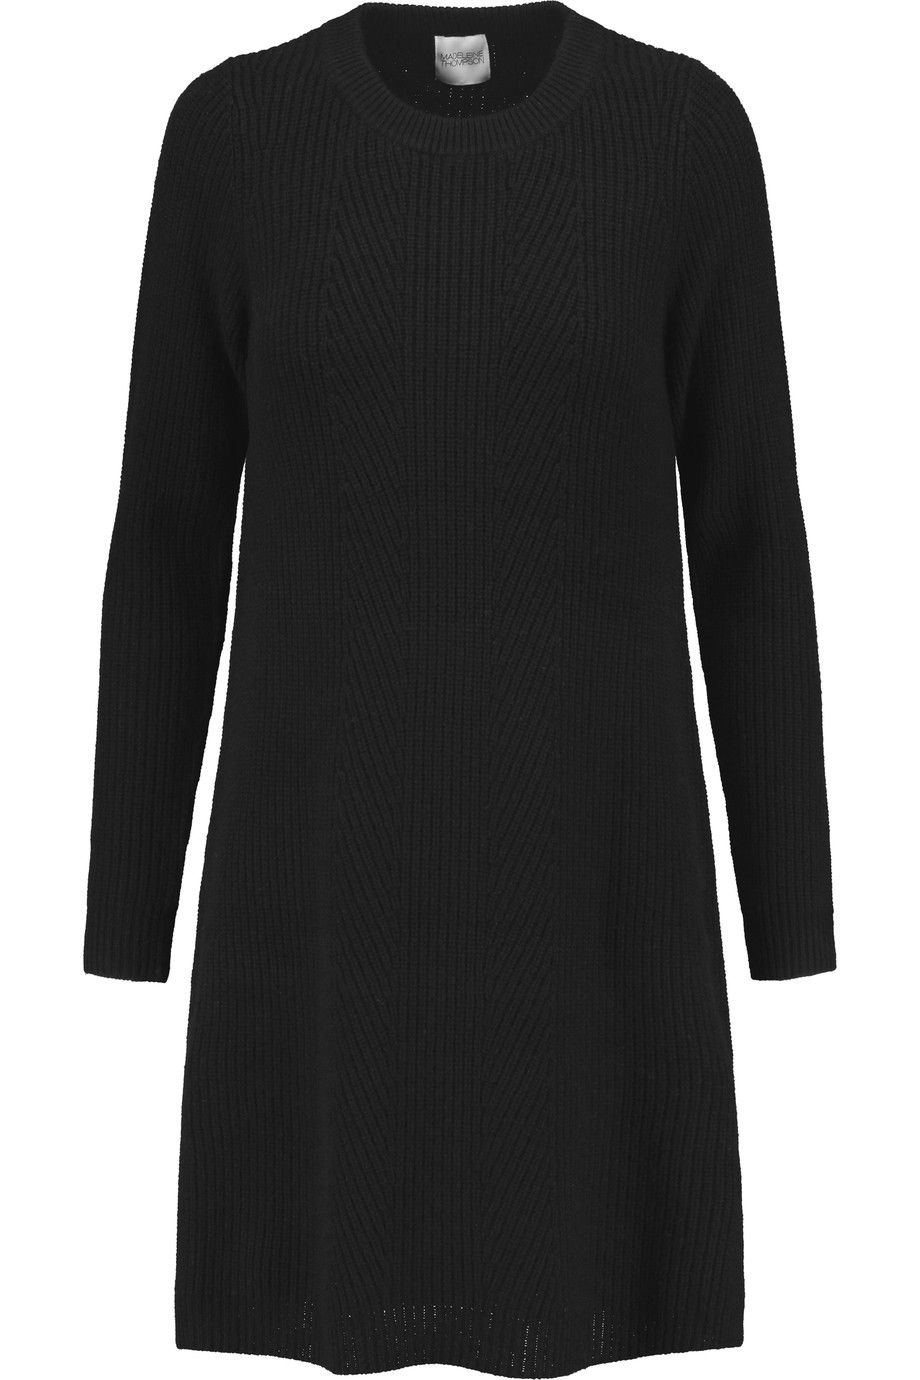 Madeleine Thompson Woman Ribbed Wool And Cashmere-blend Midi Dress Charcoal Size S Madeleine Thompson